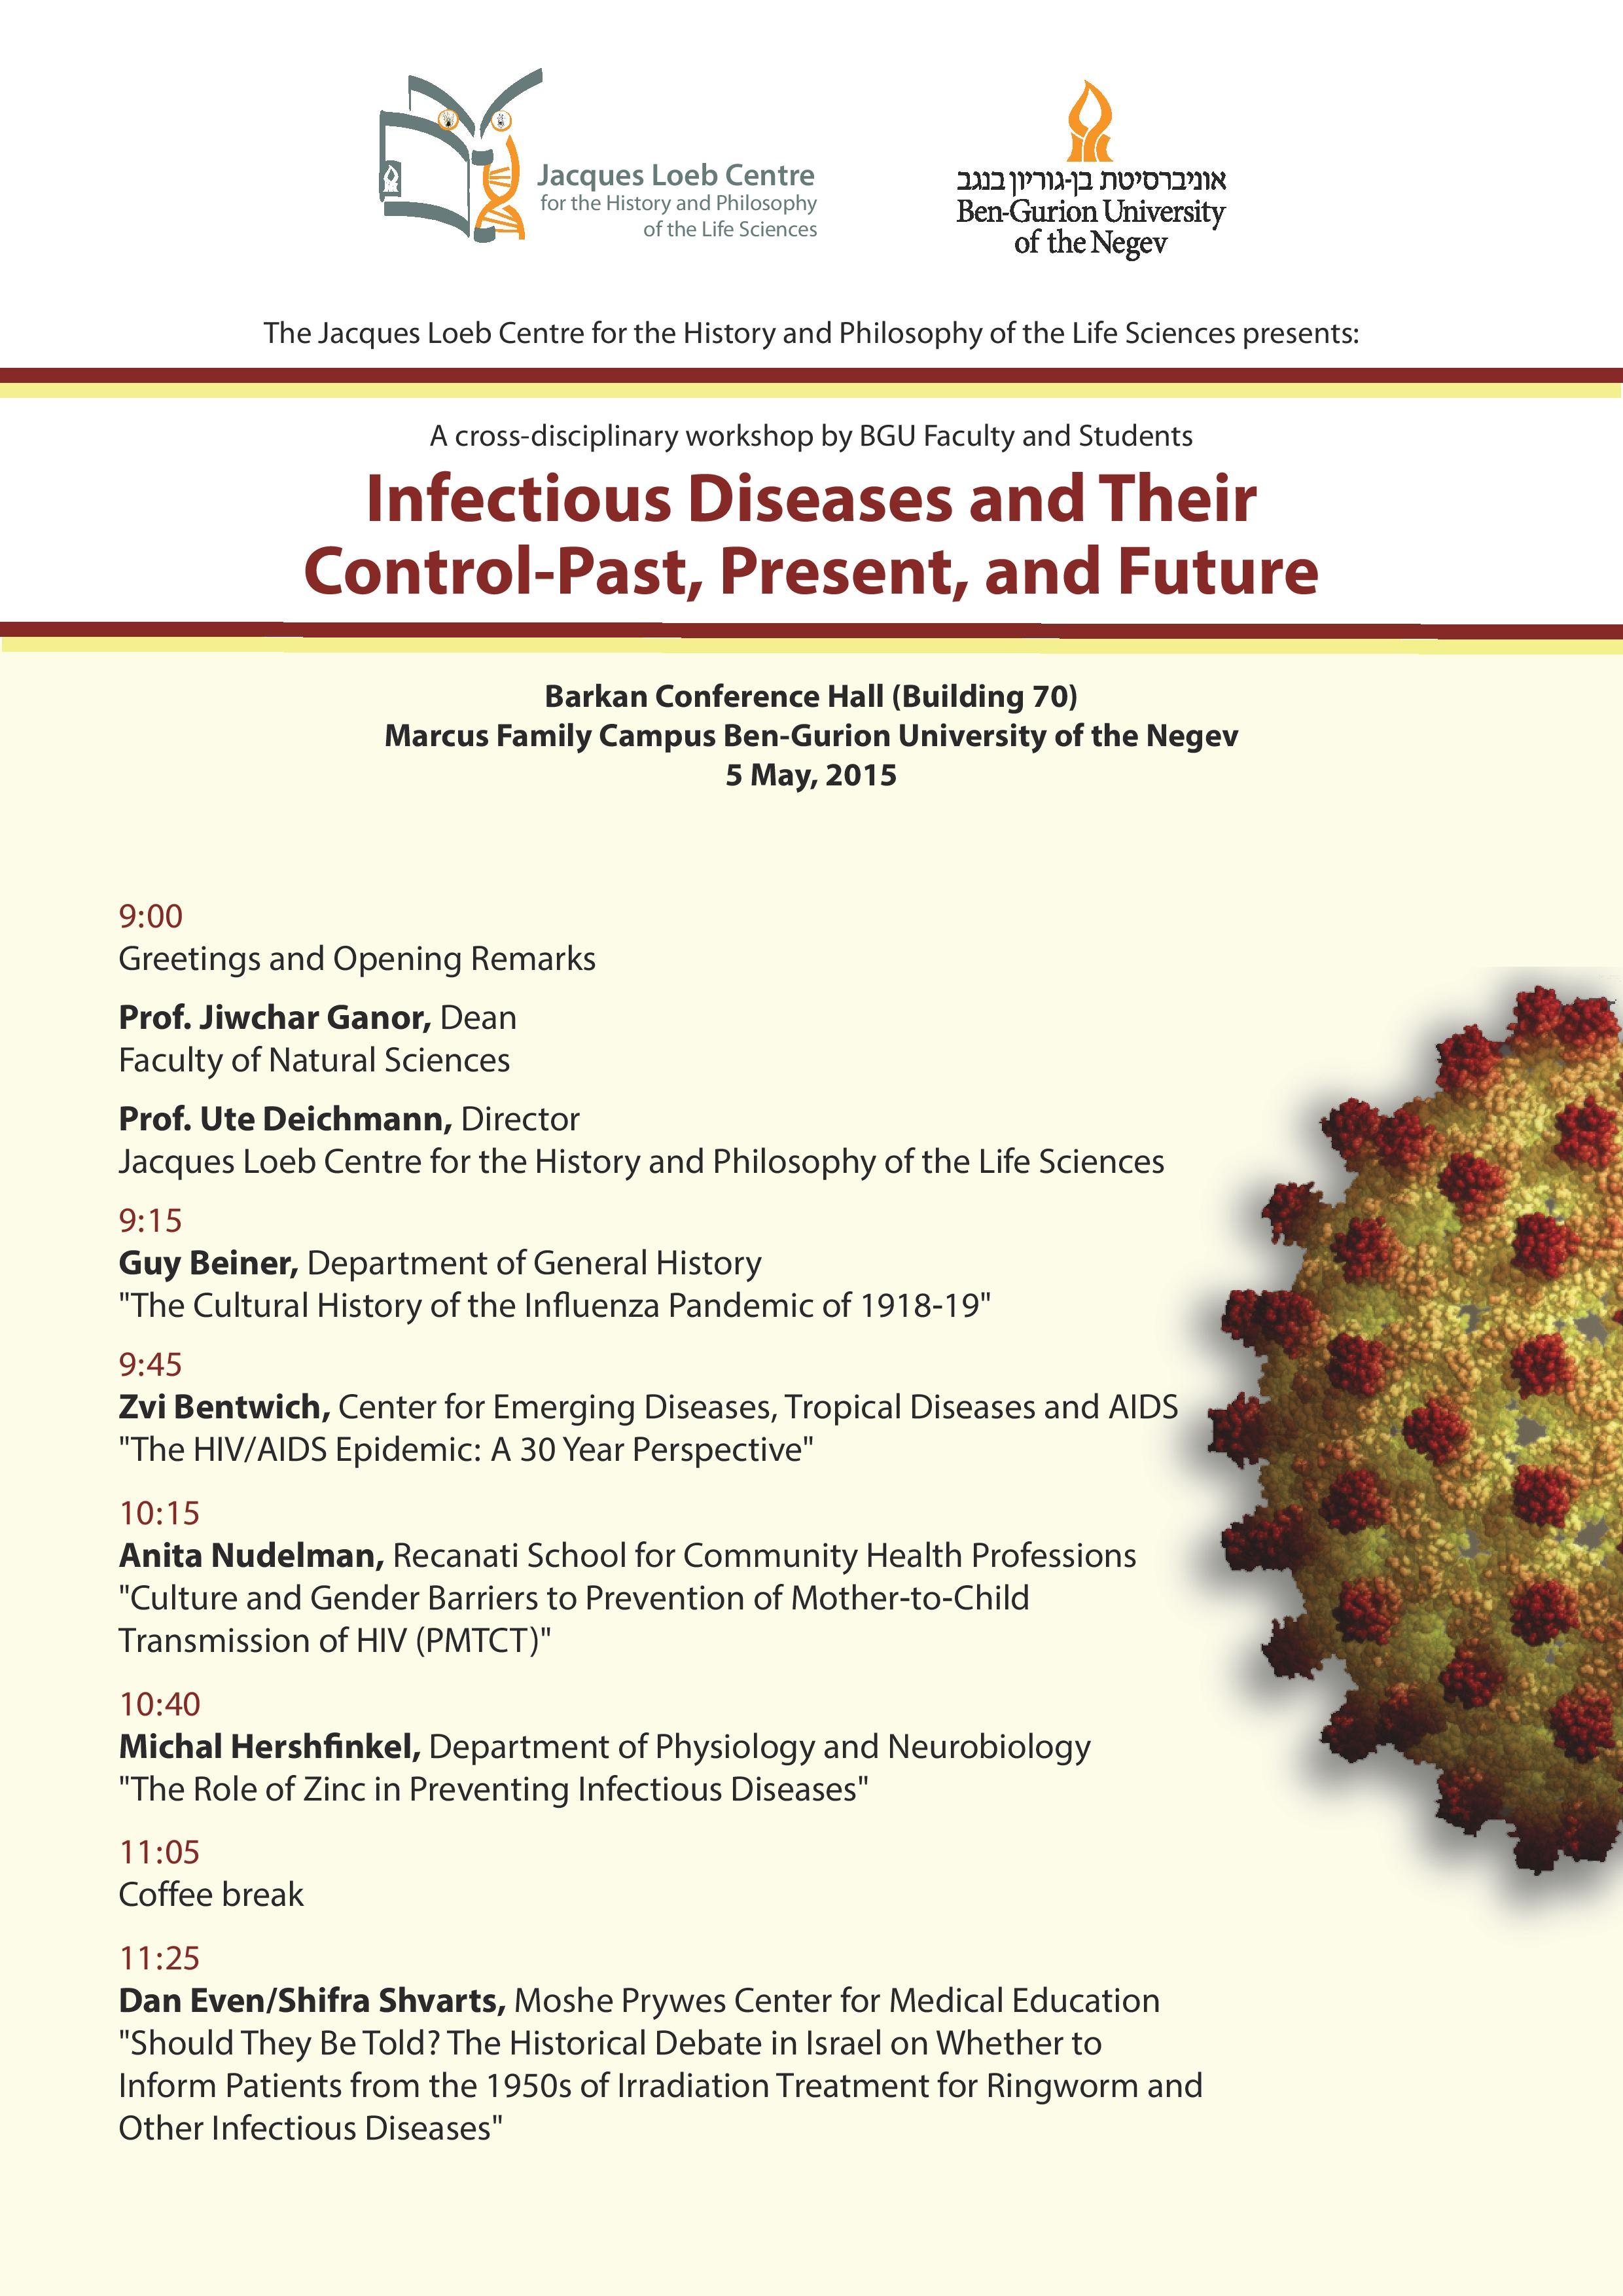 Infectious Diseases and their Control: Past, Present, and